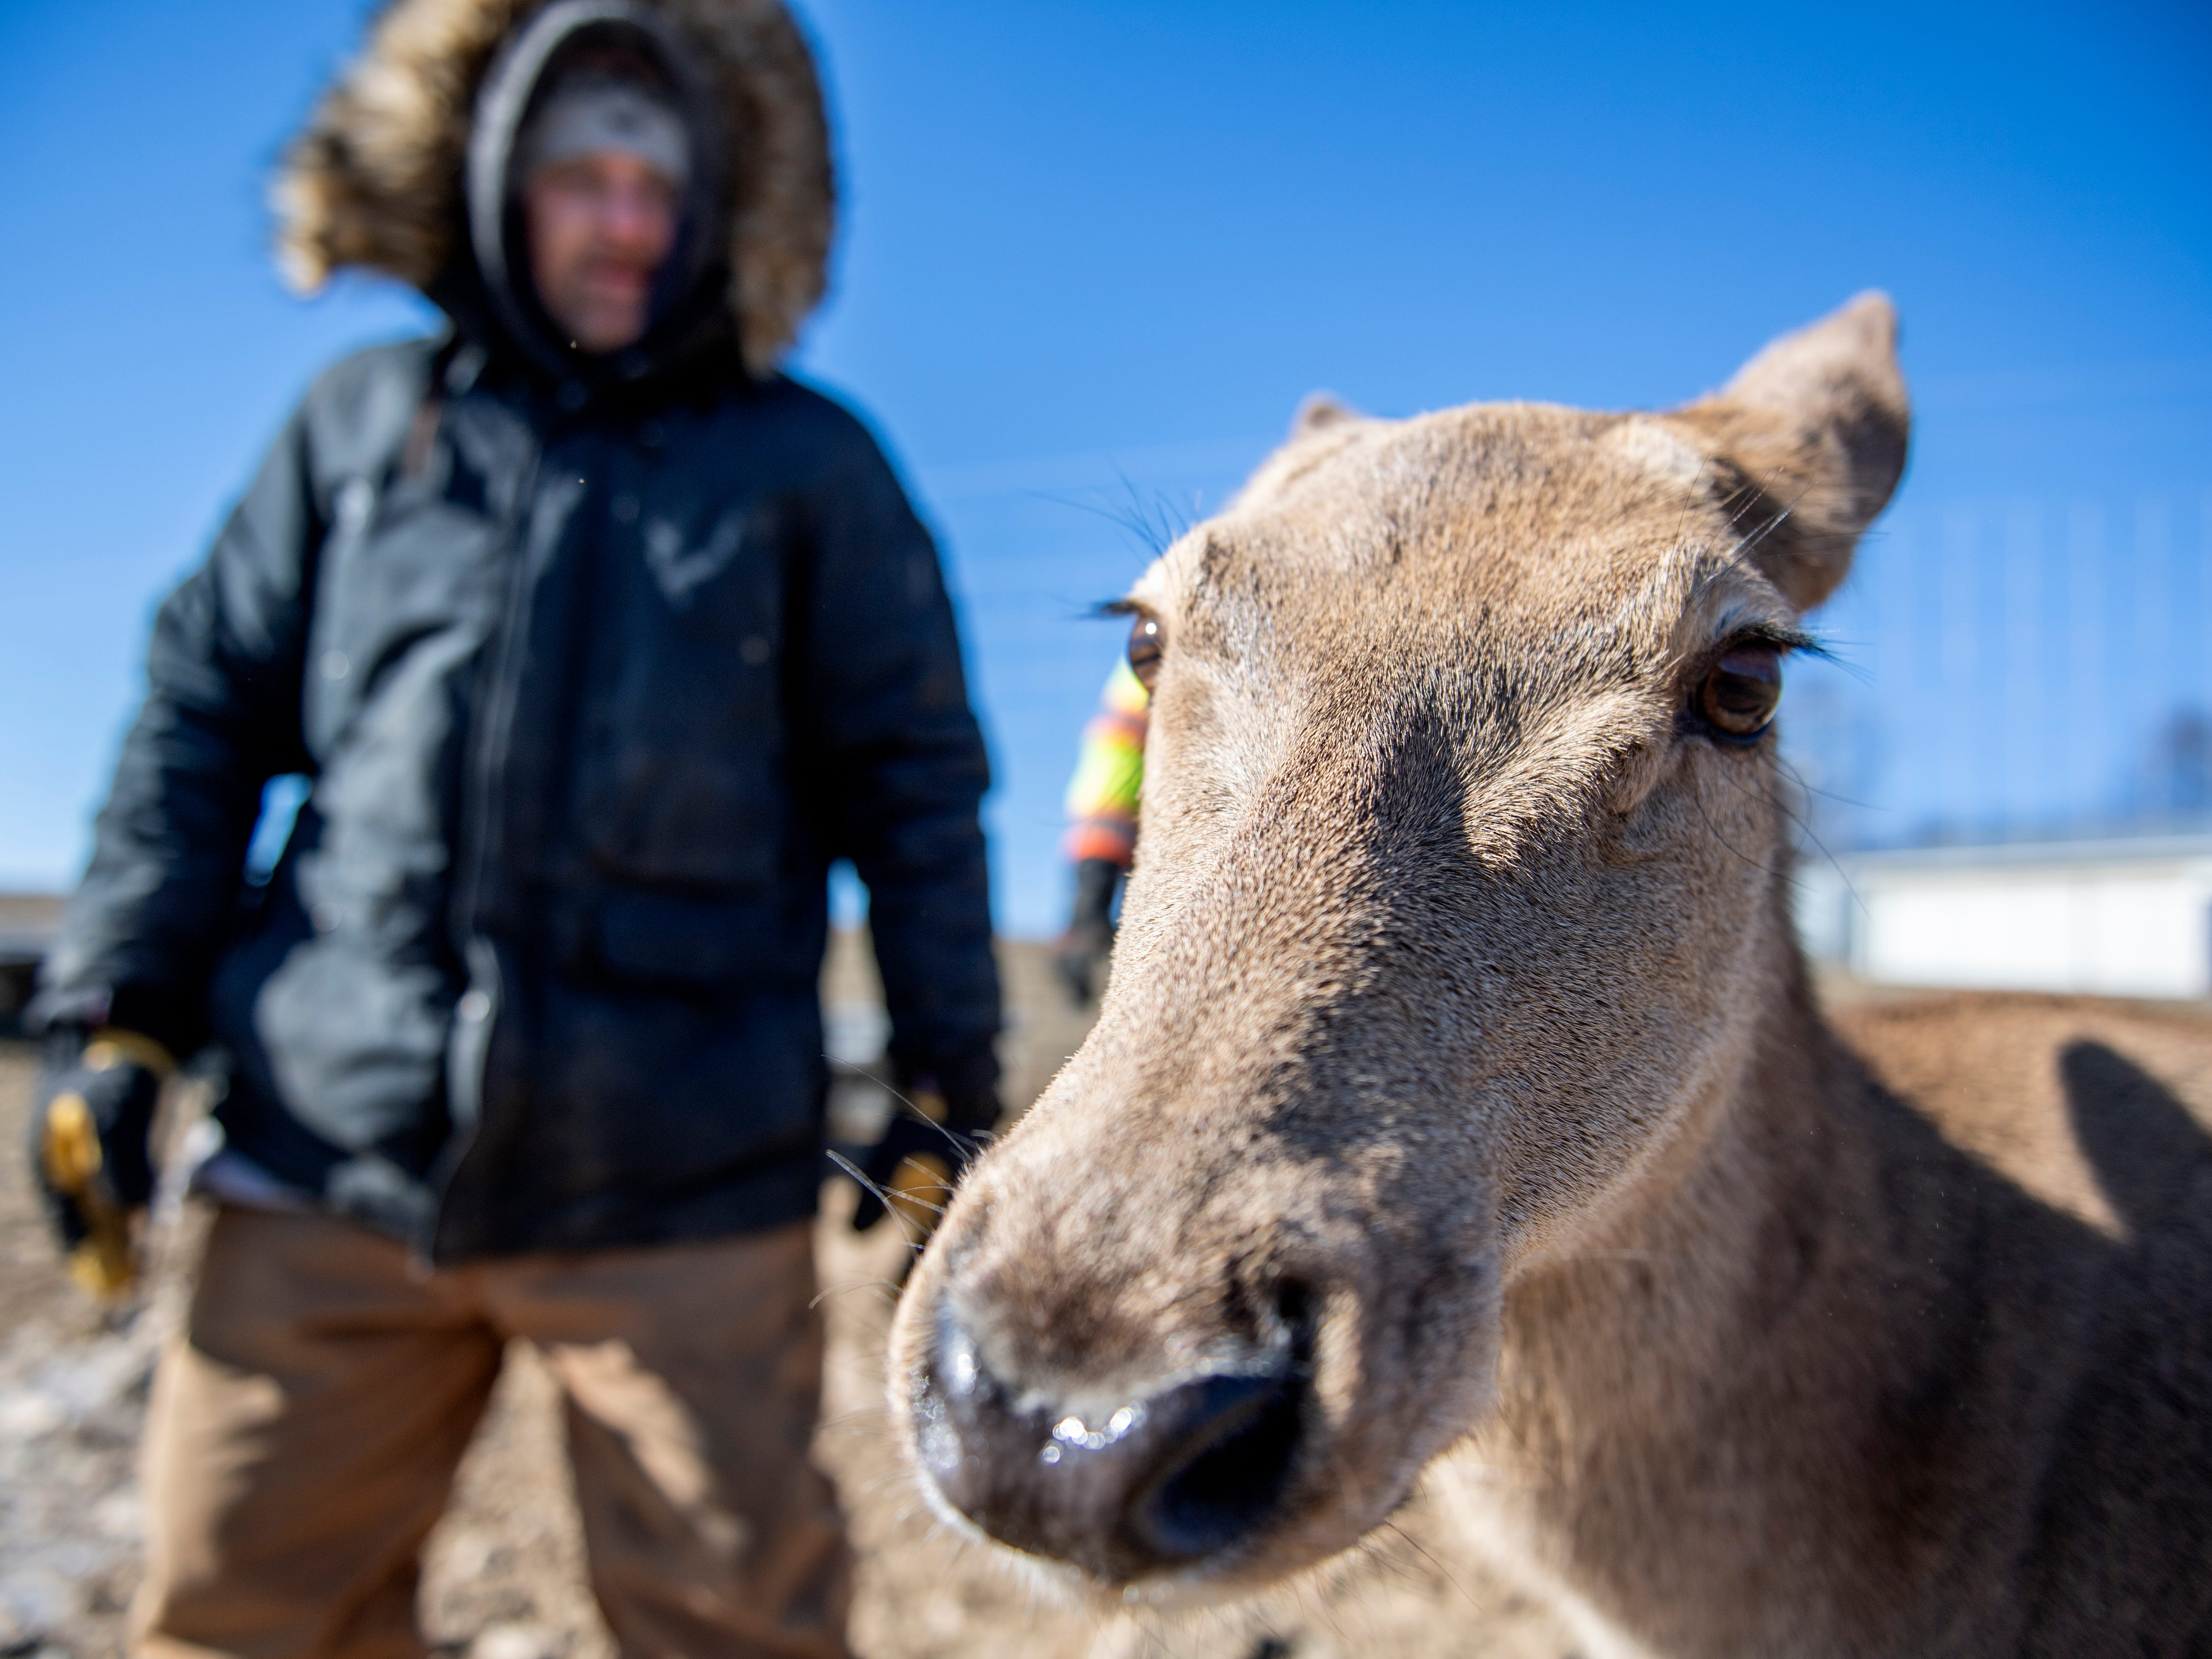 Bambi is a long-time resident at Highbourne Farms, in Dallastown. She's the only Red deer that isn't bred for venison at the farm, one of the few places in the York-area where venison is readily available for purchase year-round.